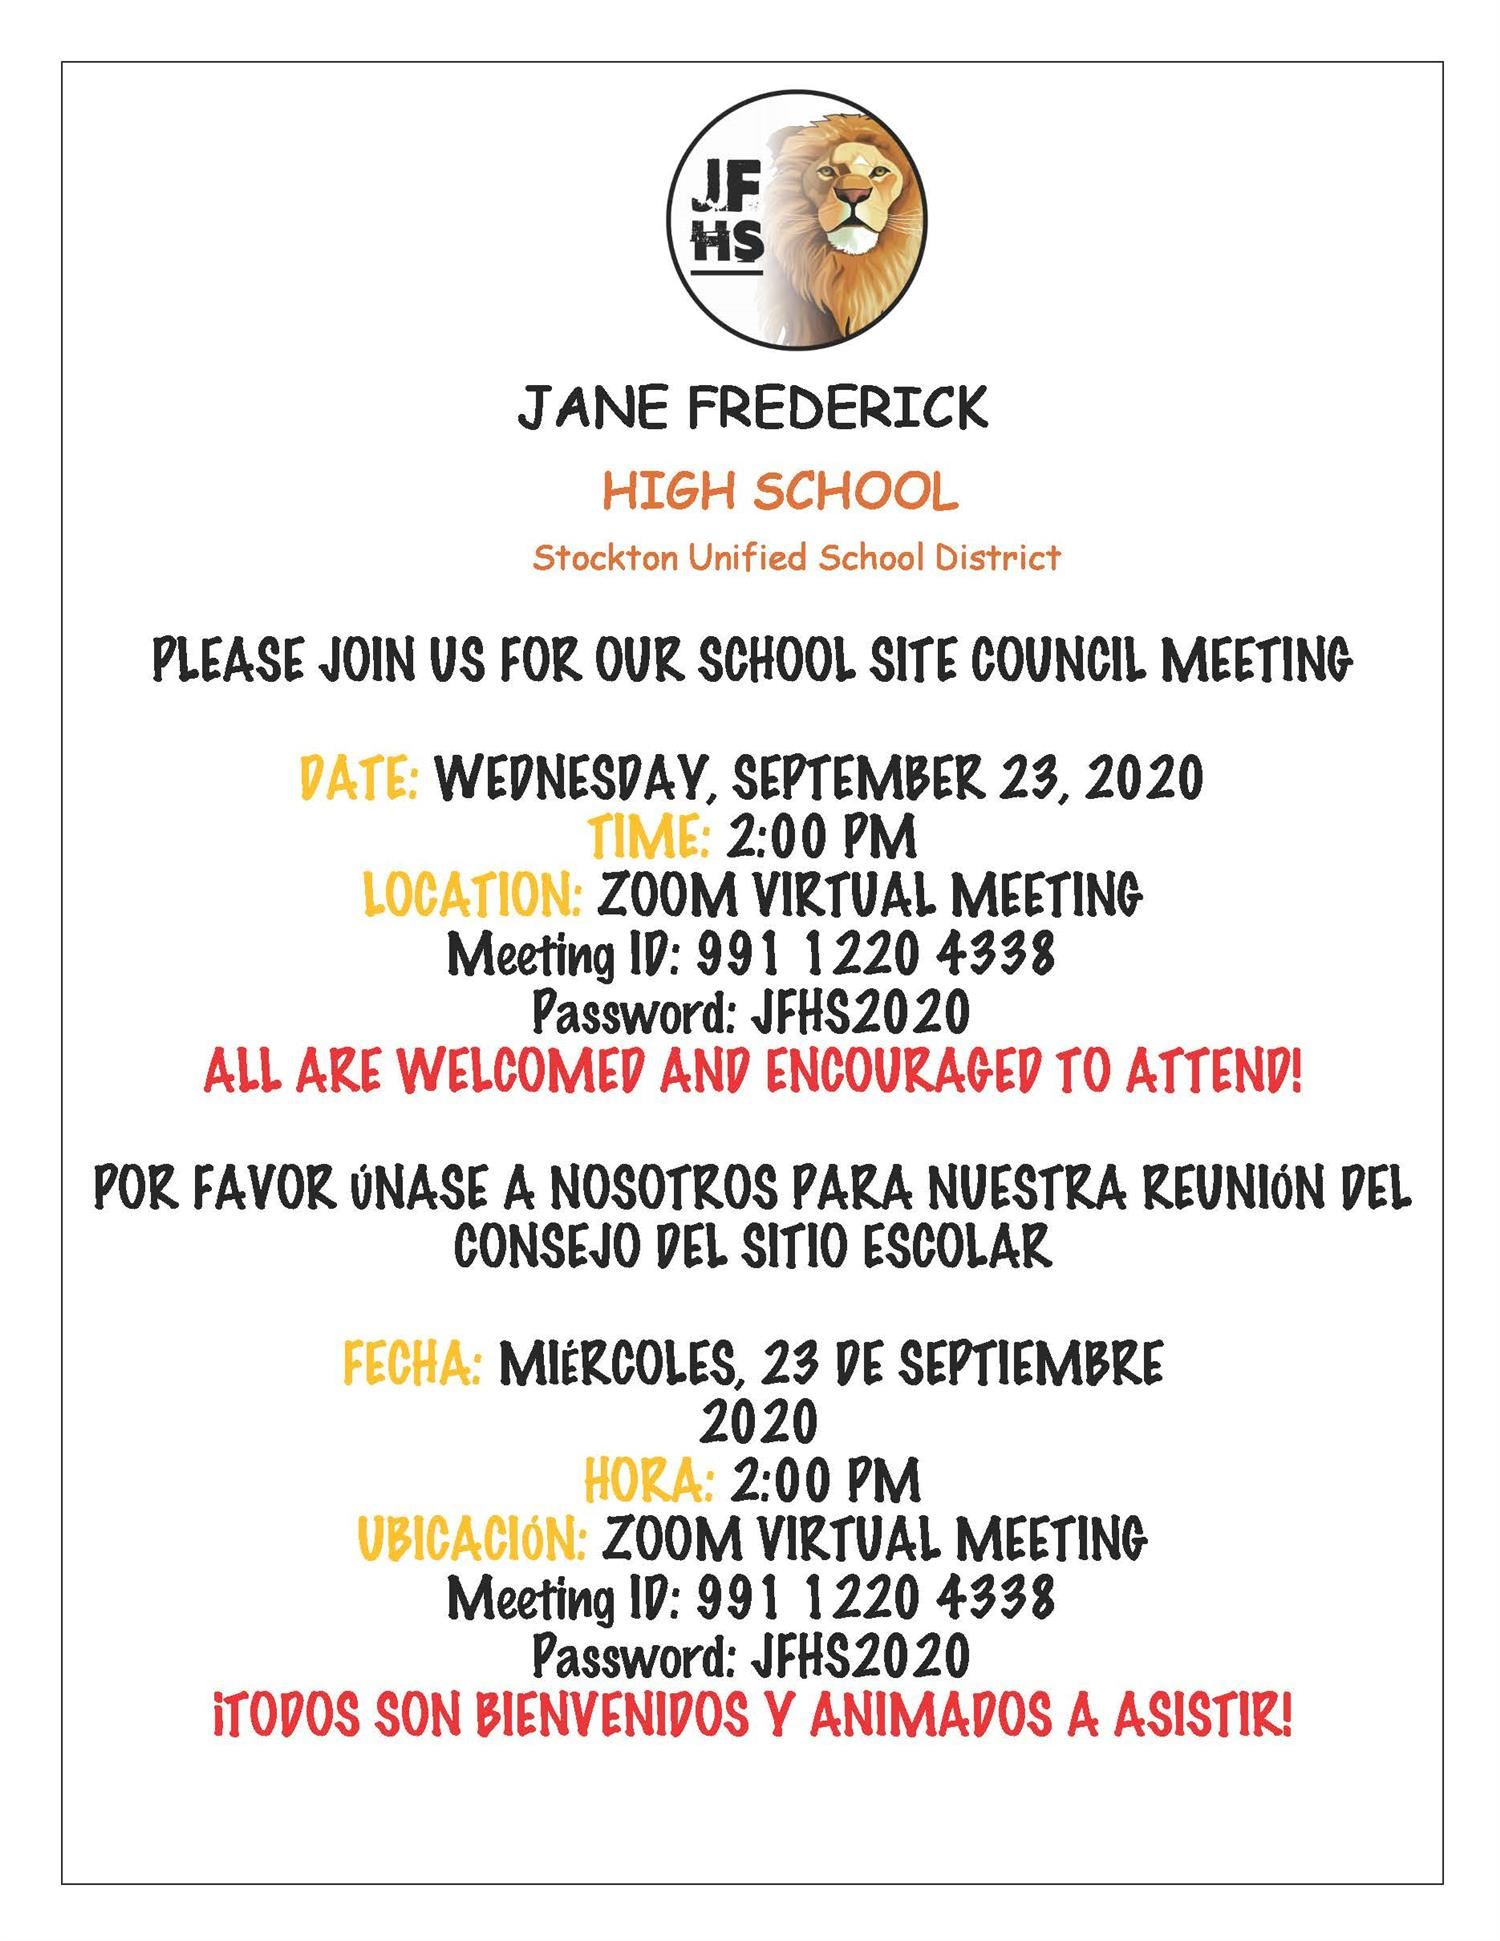 JFHS School Site Council Meeting - 9/23/2020 @ 2:00 pm (on Zoom)